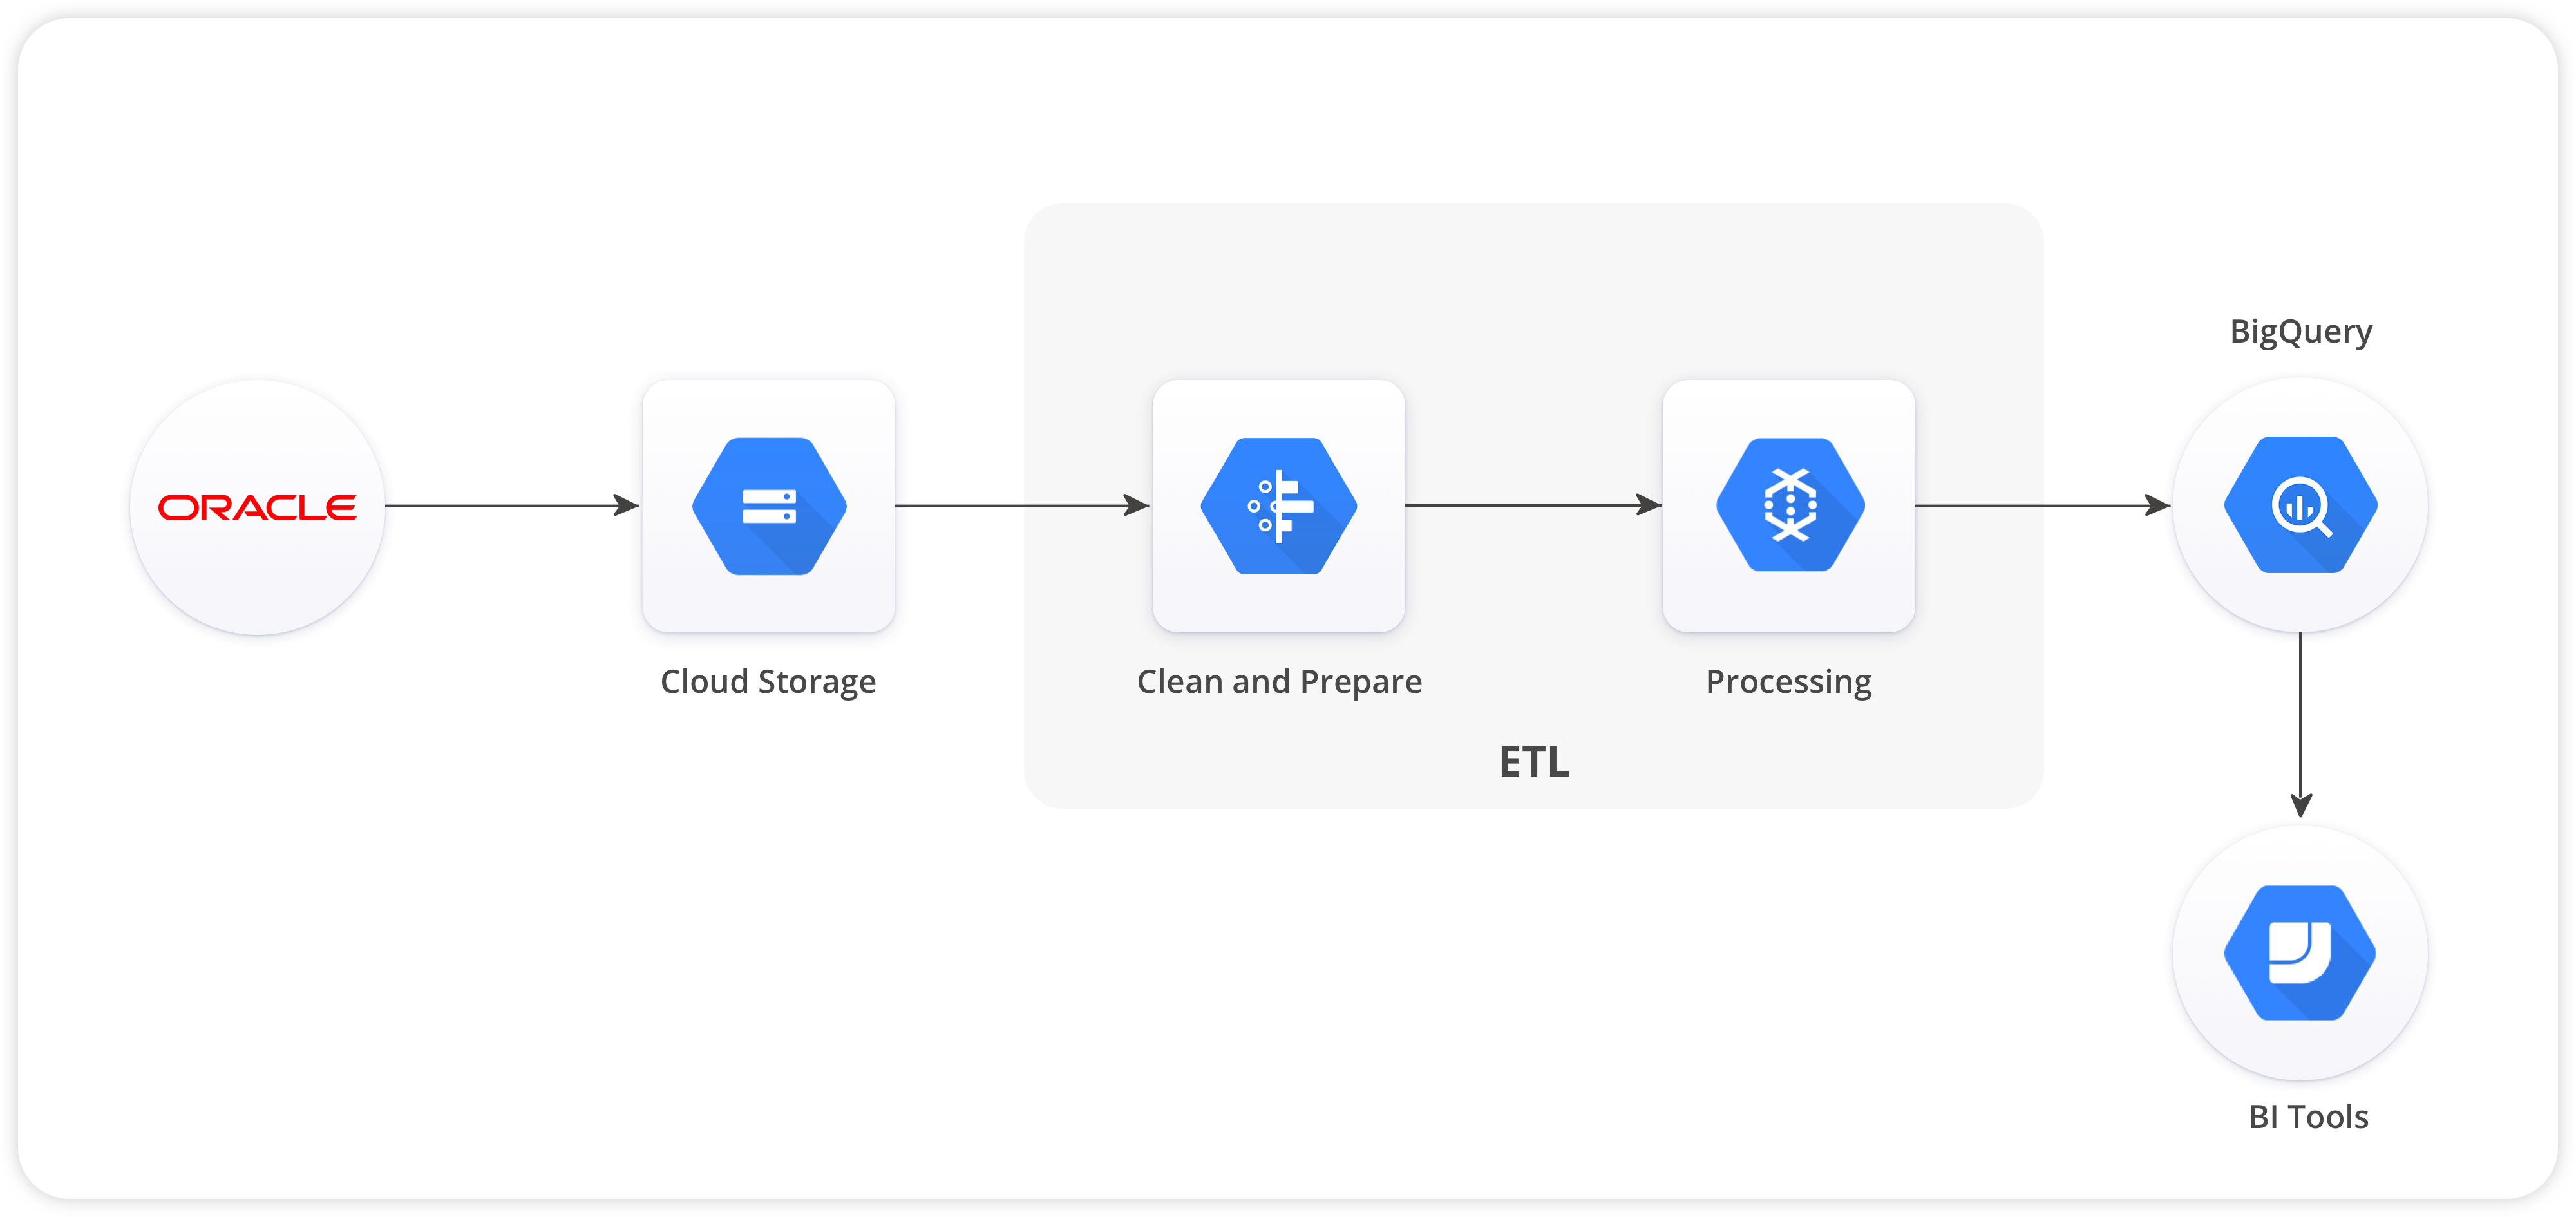 Oracle to BigQuery ETL - Steps to Migrate Data | Hevo Blog